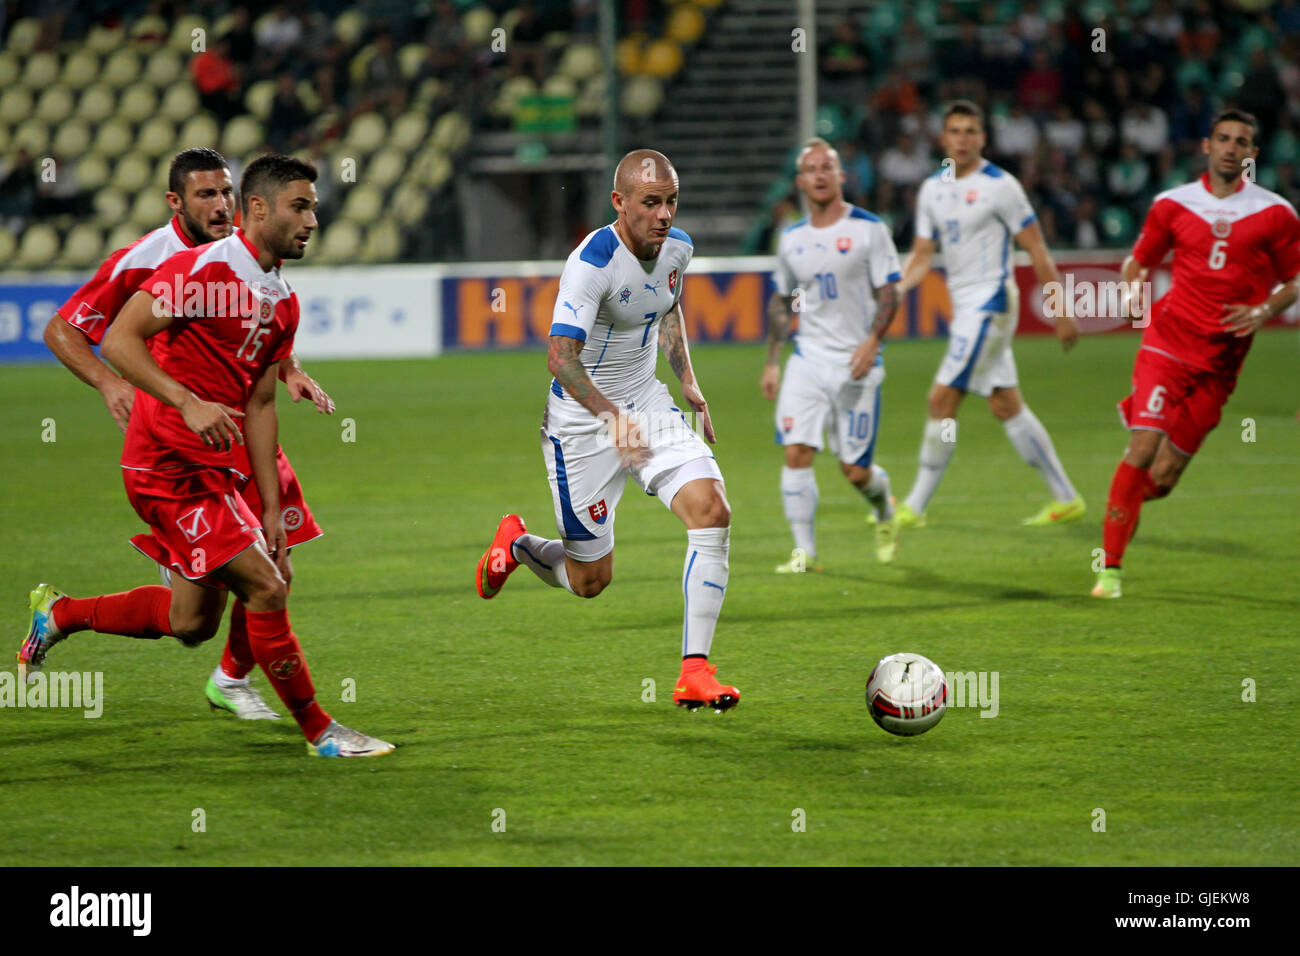 Slovakia's Vladimir Weiss (in the centre) with the ball during the friendly football match Slovakia vs Malta 1-0. - Stock Image